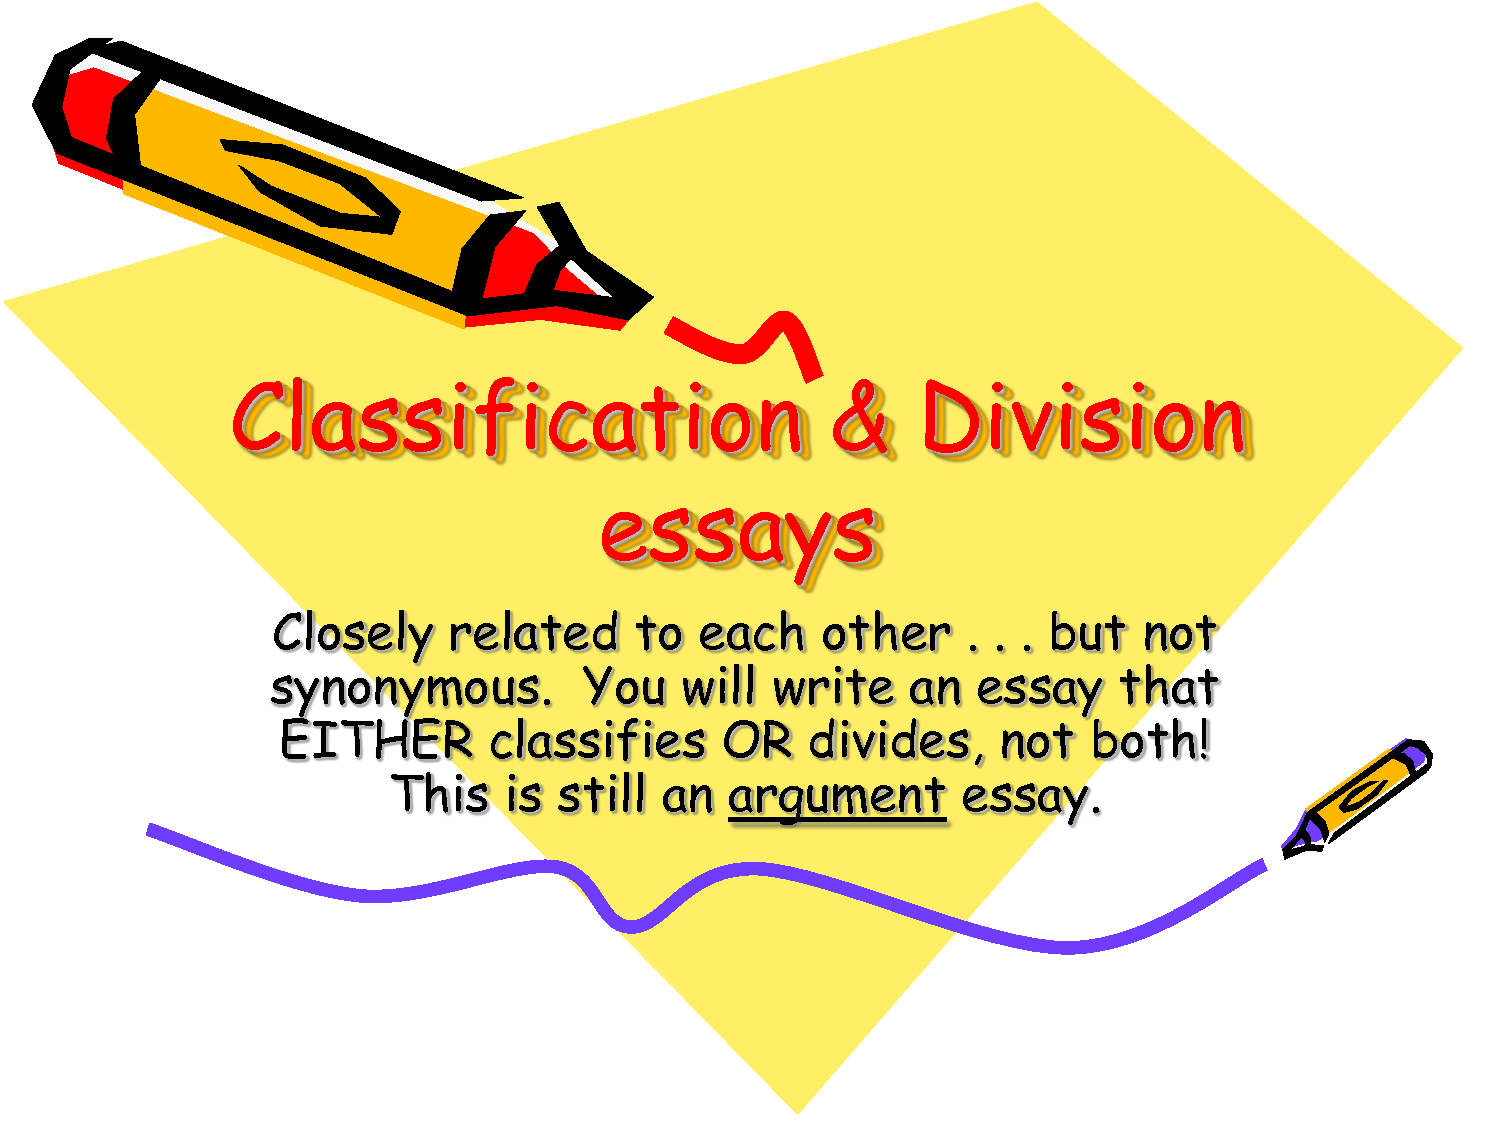 classifying computers essay Free sample essay on computer technology: since the beginning of time technology has helped us out as a human race from the invention of the wheel to the internet, technology has been a.